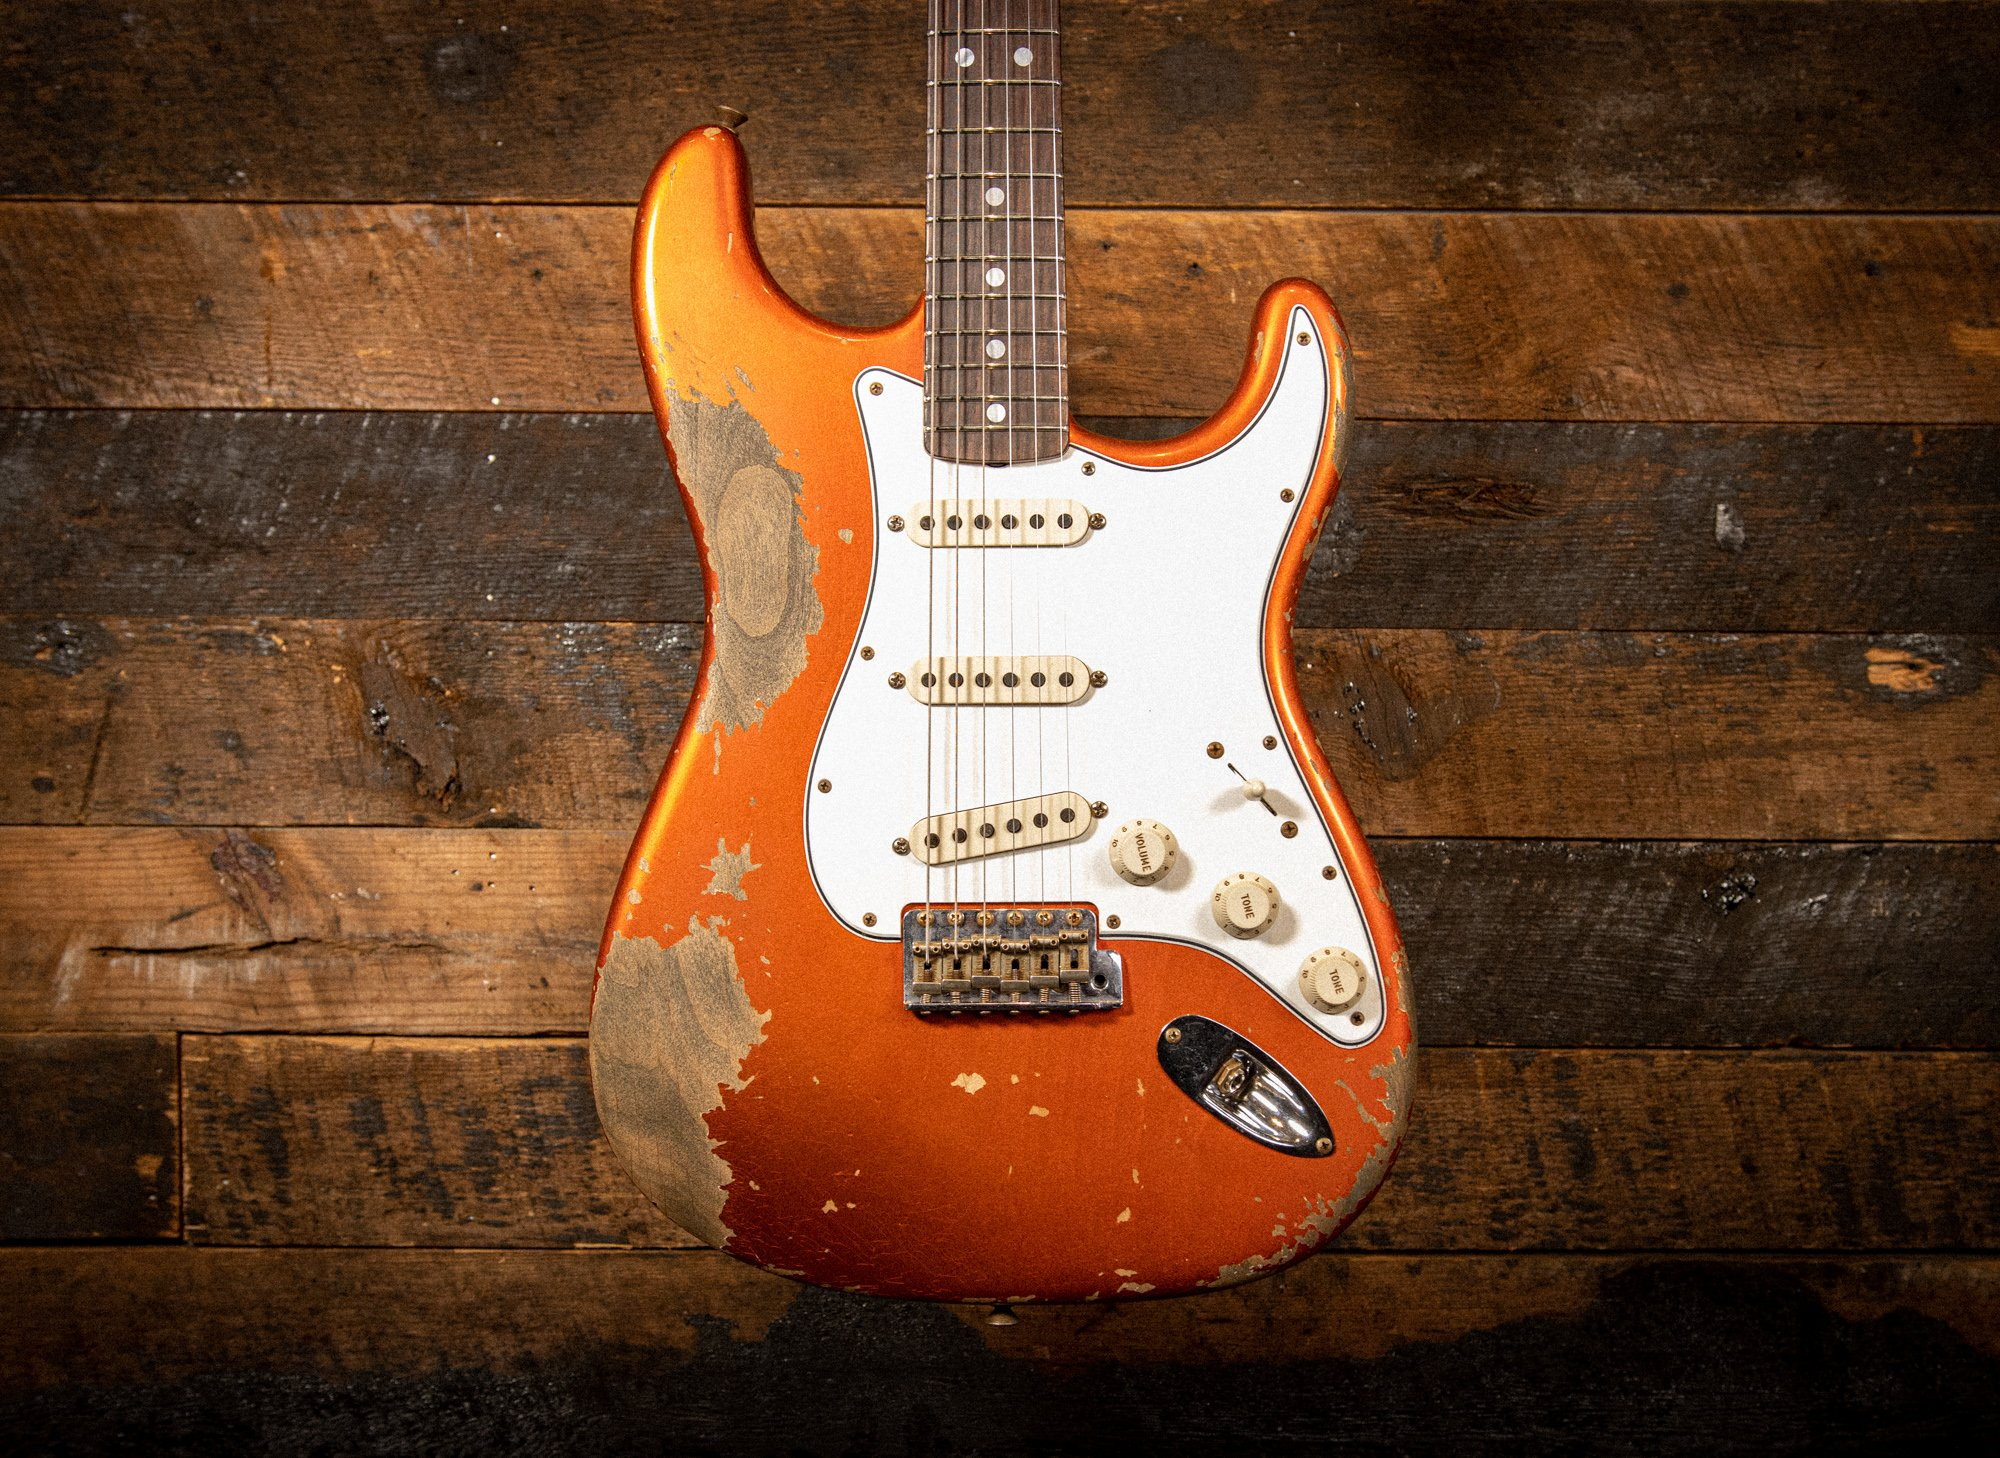 Fender Custom Shop 1969 Stratocaster Heavy Relic in Candy Tangerine with Reverse Headstock